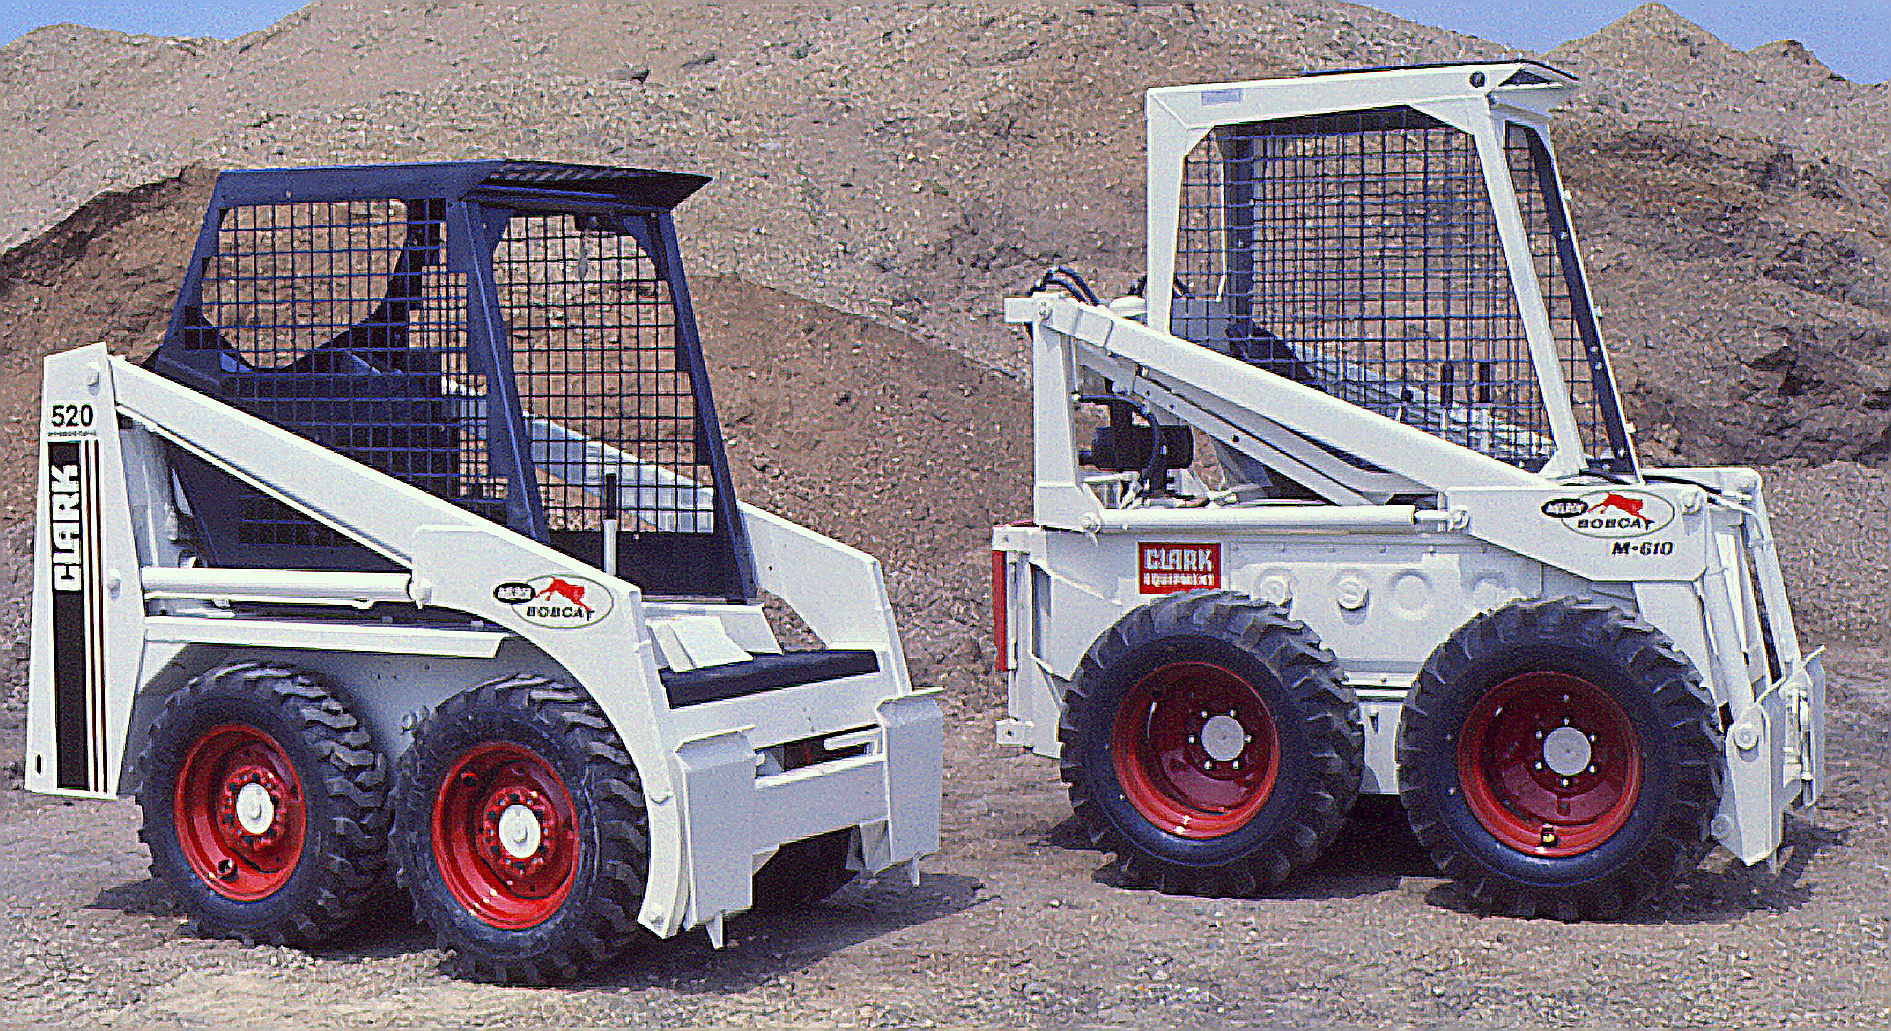 wiring diagram for bobcat 610 skid steer wiring diagram Bobcat 610 Backhoe Attachment clark bobcat 610 wiring diagram wiring diagram